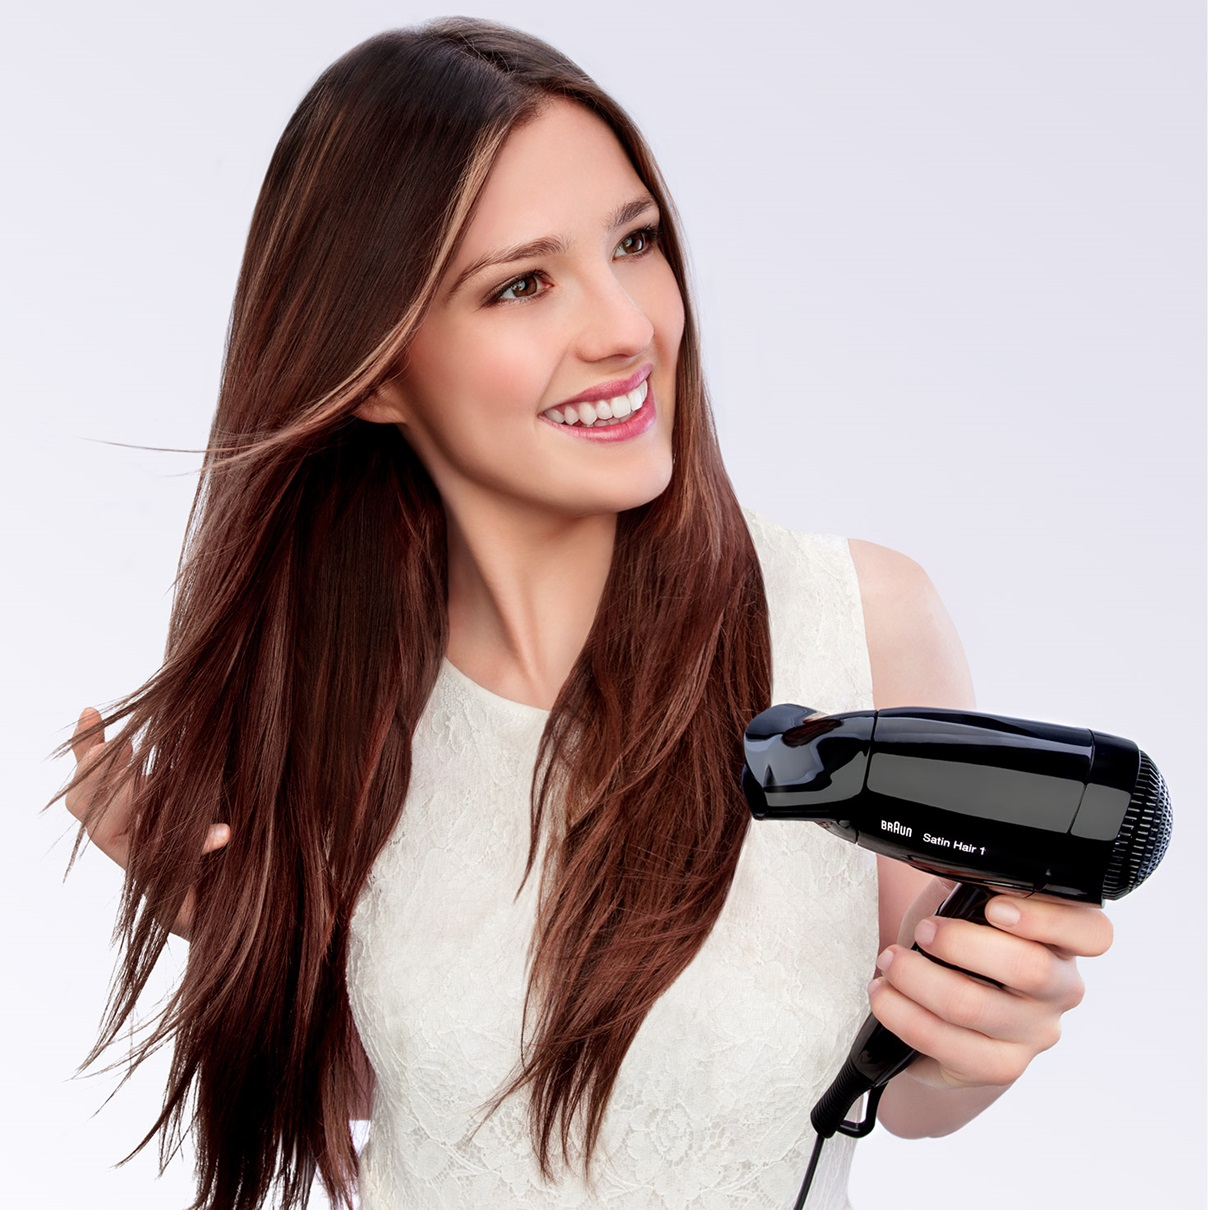 Braun Satin Hair 1 HD130 the lightest Style&Go Braun dryer - in use